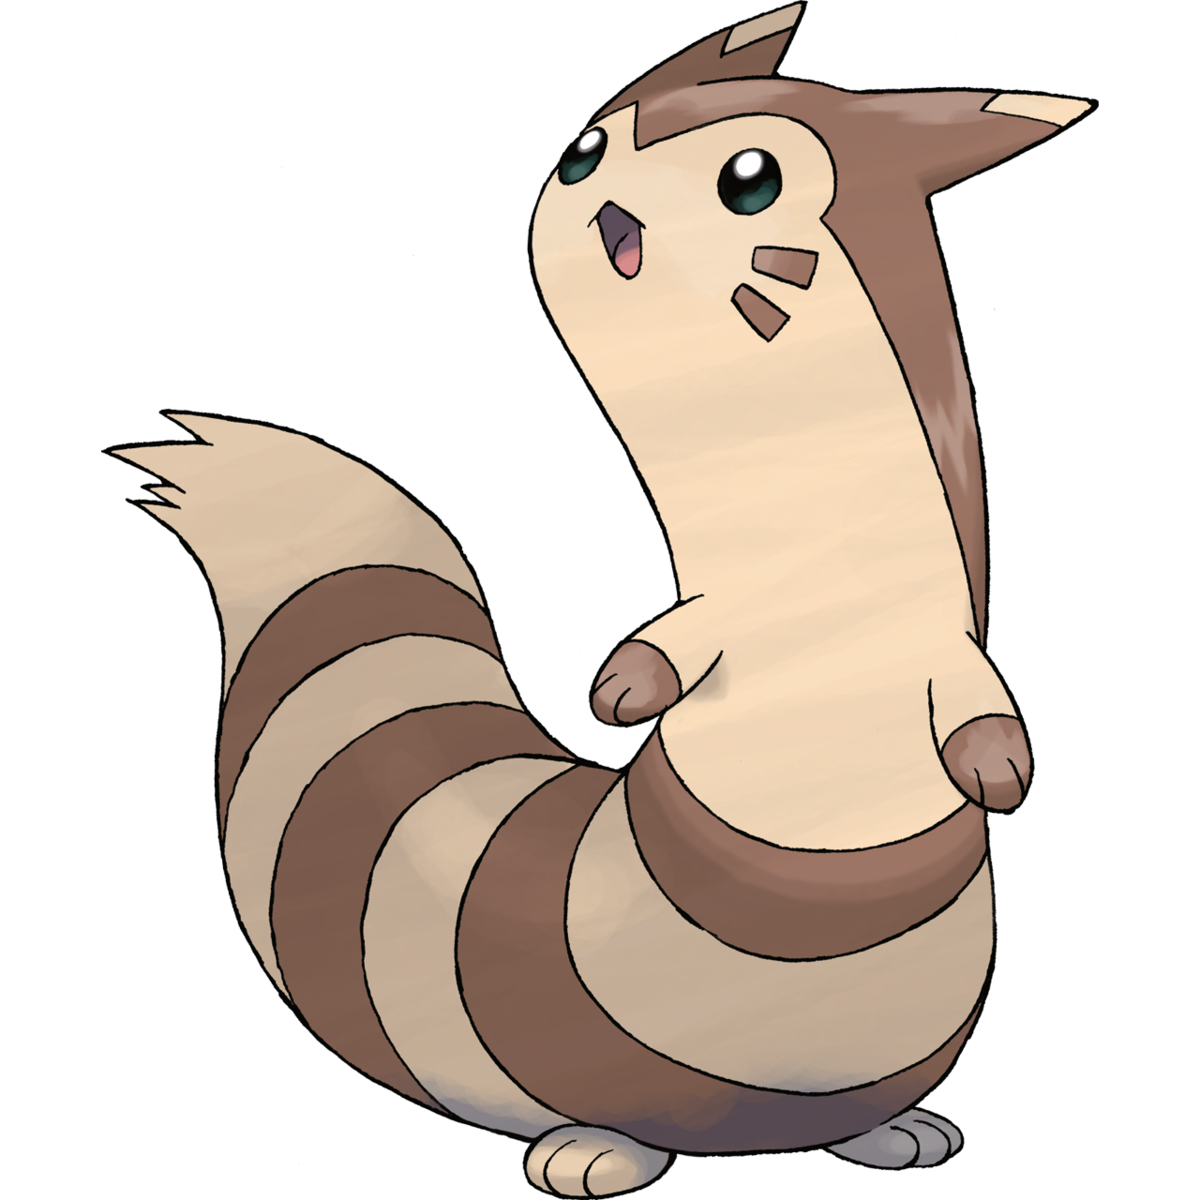 Furret Sugimori Artwork